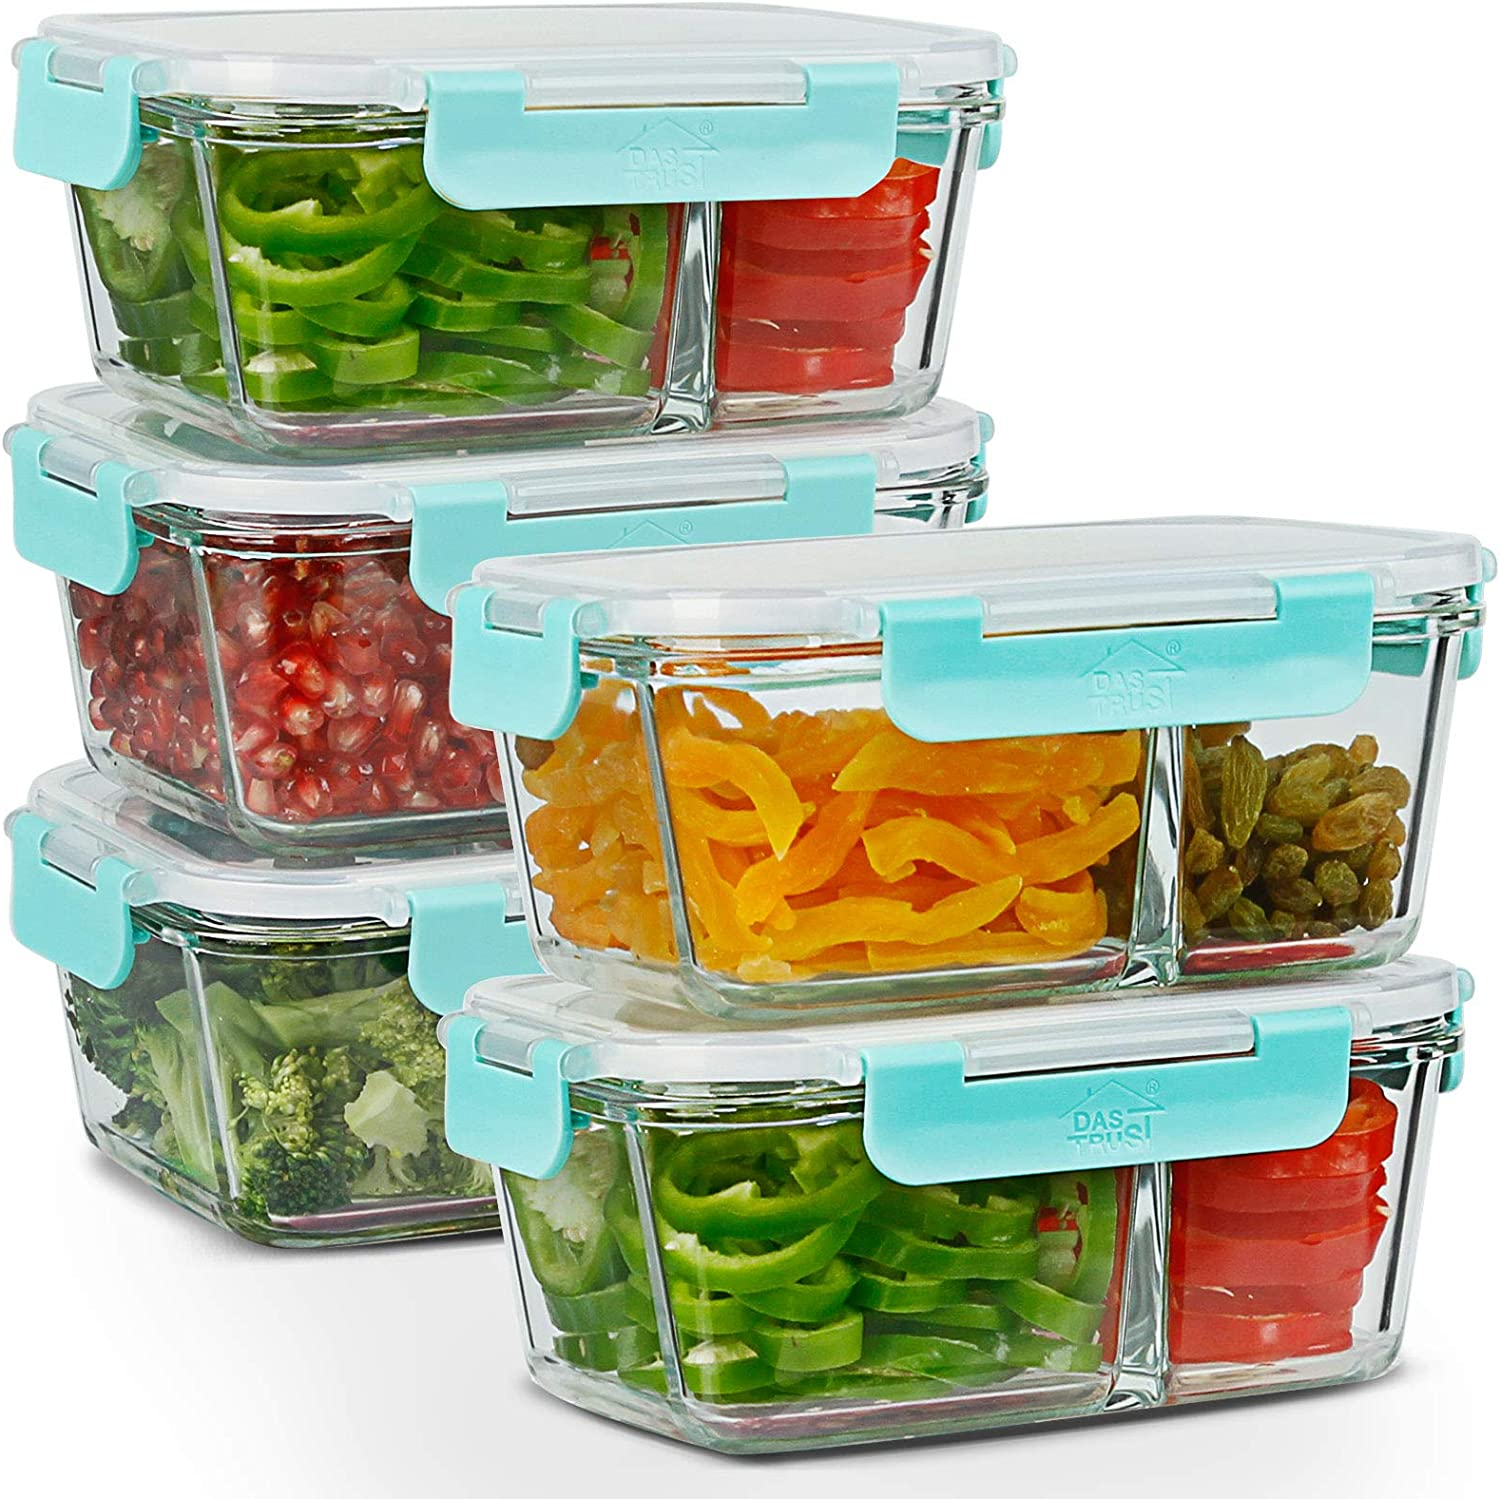 5 Pack 35.5oz Meal Prep Containers 2 Compartments Portion Control with Leakproof Lids Glass Food Storage Containers Bento Boxes Lunch Containers with Leakproof Lids, Oven Freezer Dishwasher Safe